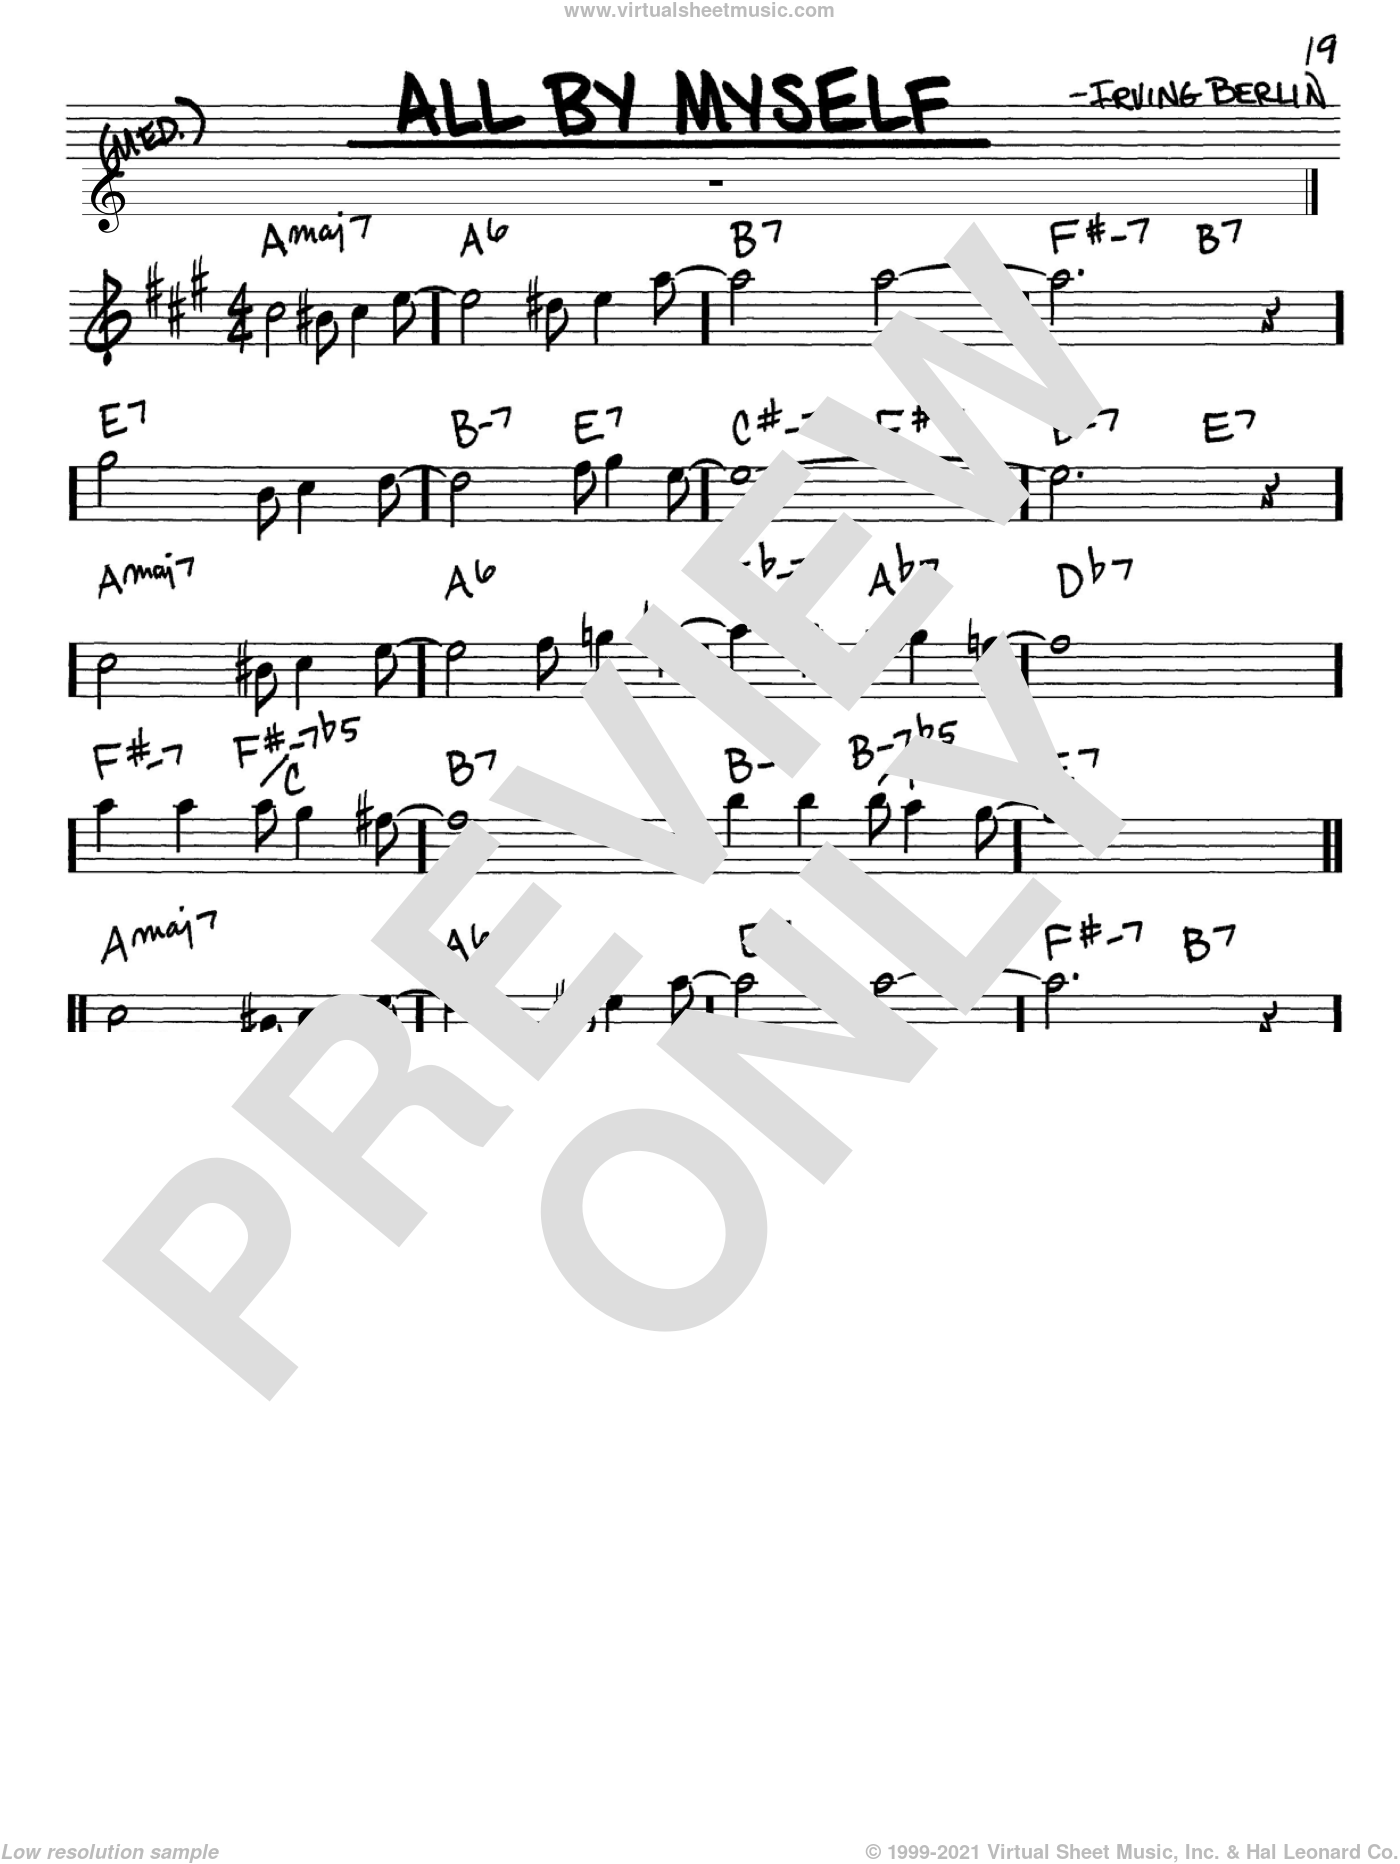 All By Myself sheet music for voice and other instruments (in Eb) by Irving Berlin, Bing Crosby, Frank Crumit and Ted Lewis, intermediate skill level